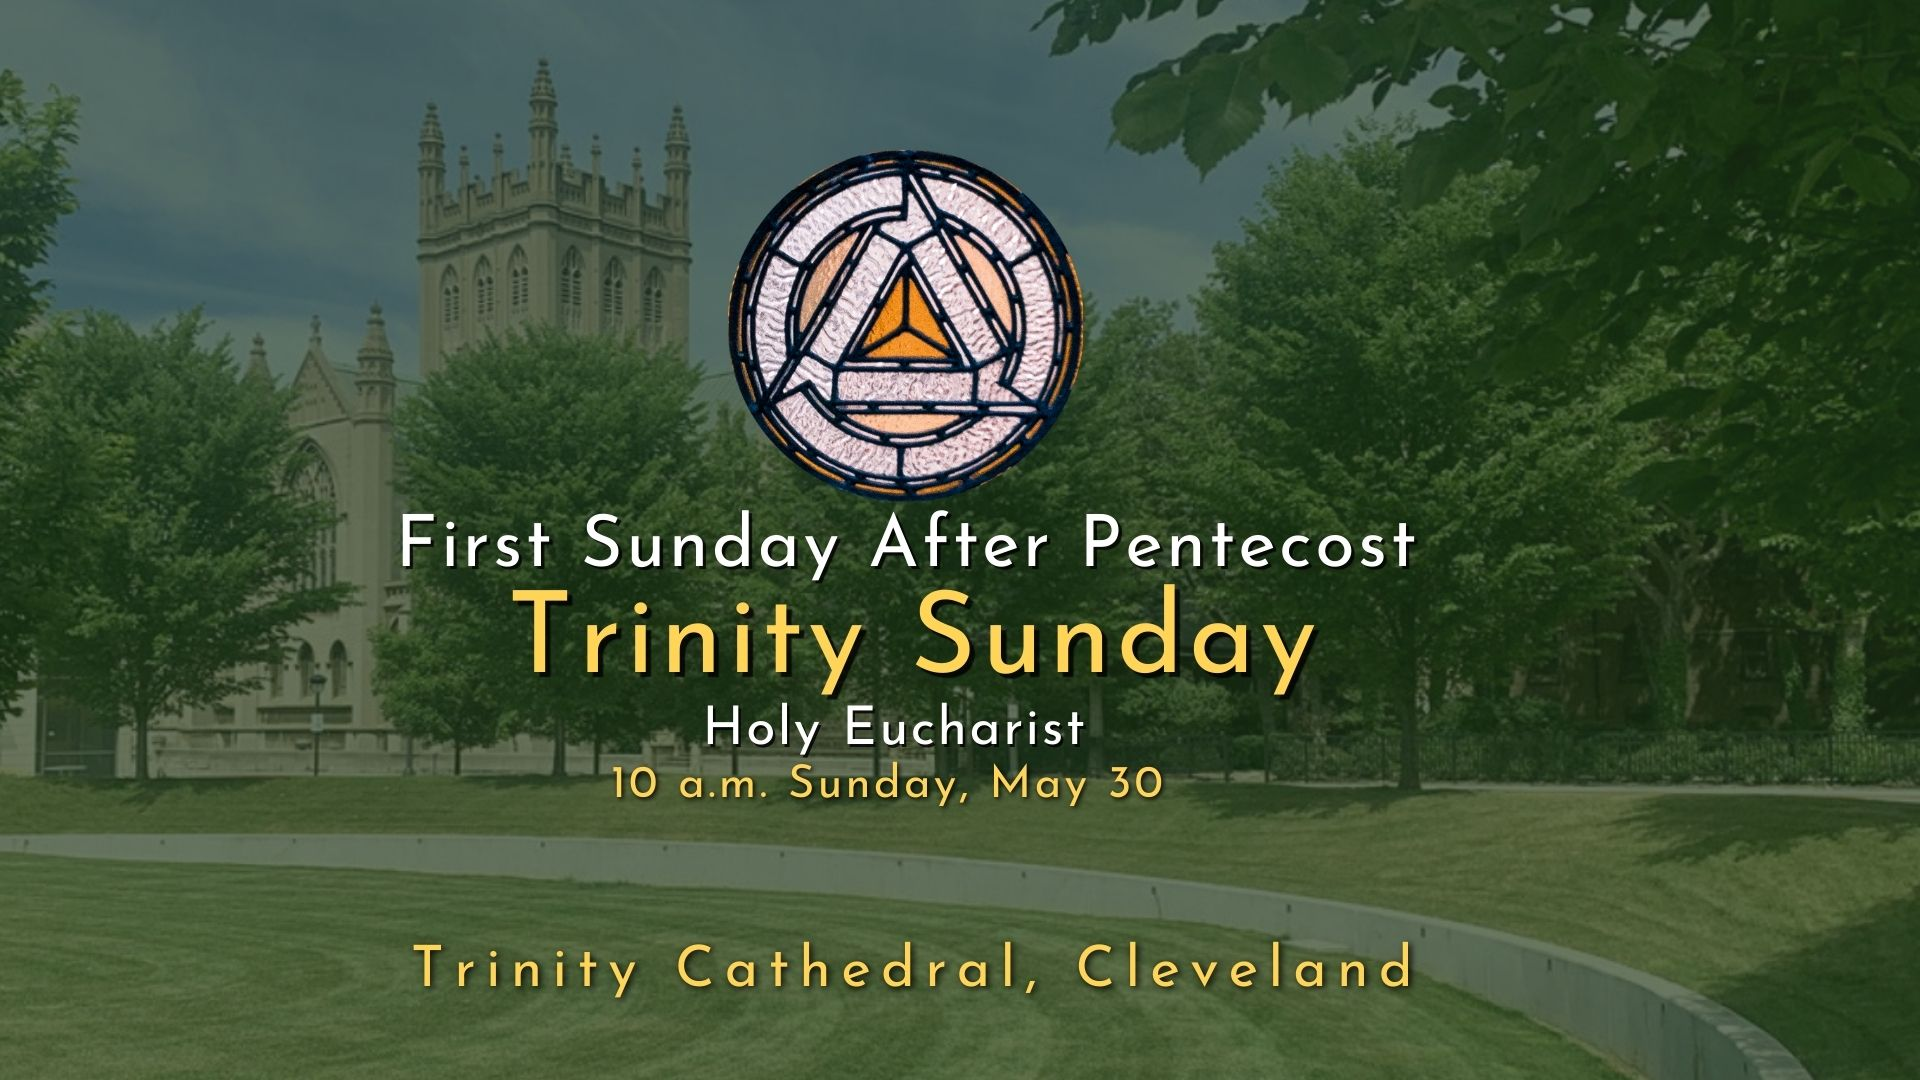 Holy Eucharist: The First Sunday After Pentecost — Trinity Sunday